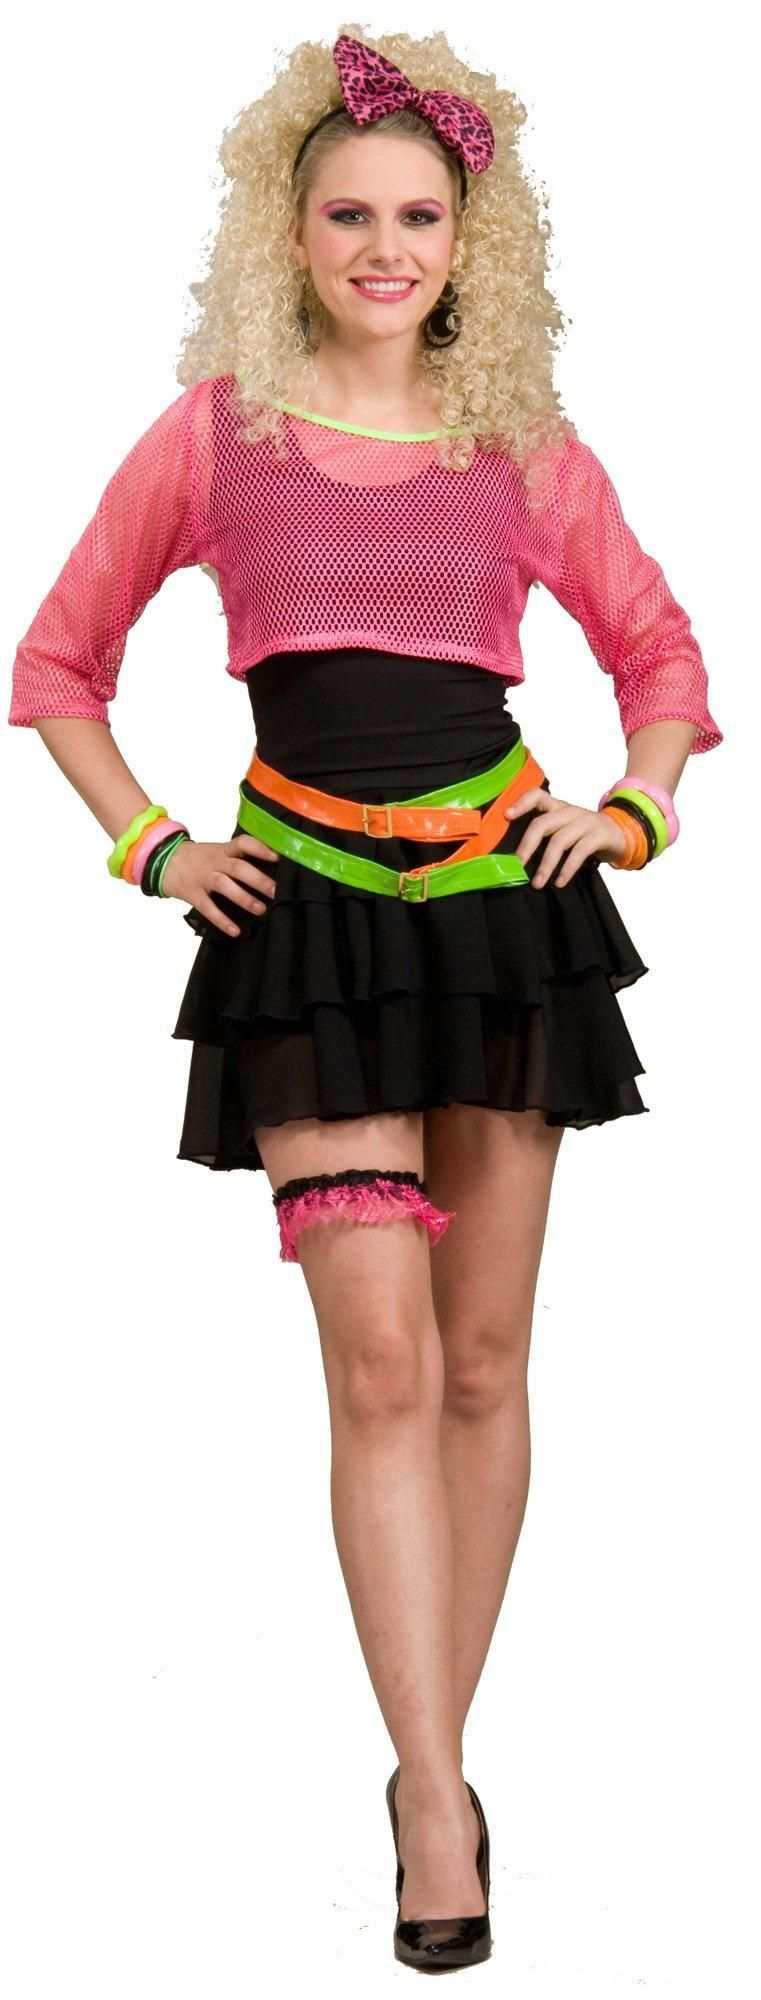 80s Groupie Adult Costume from 80s fancy